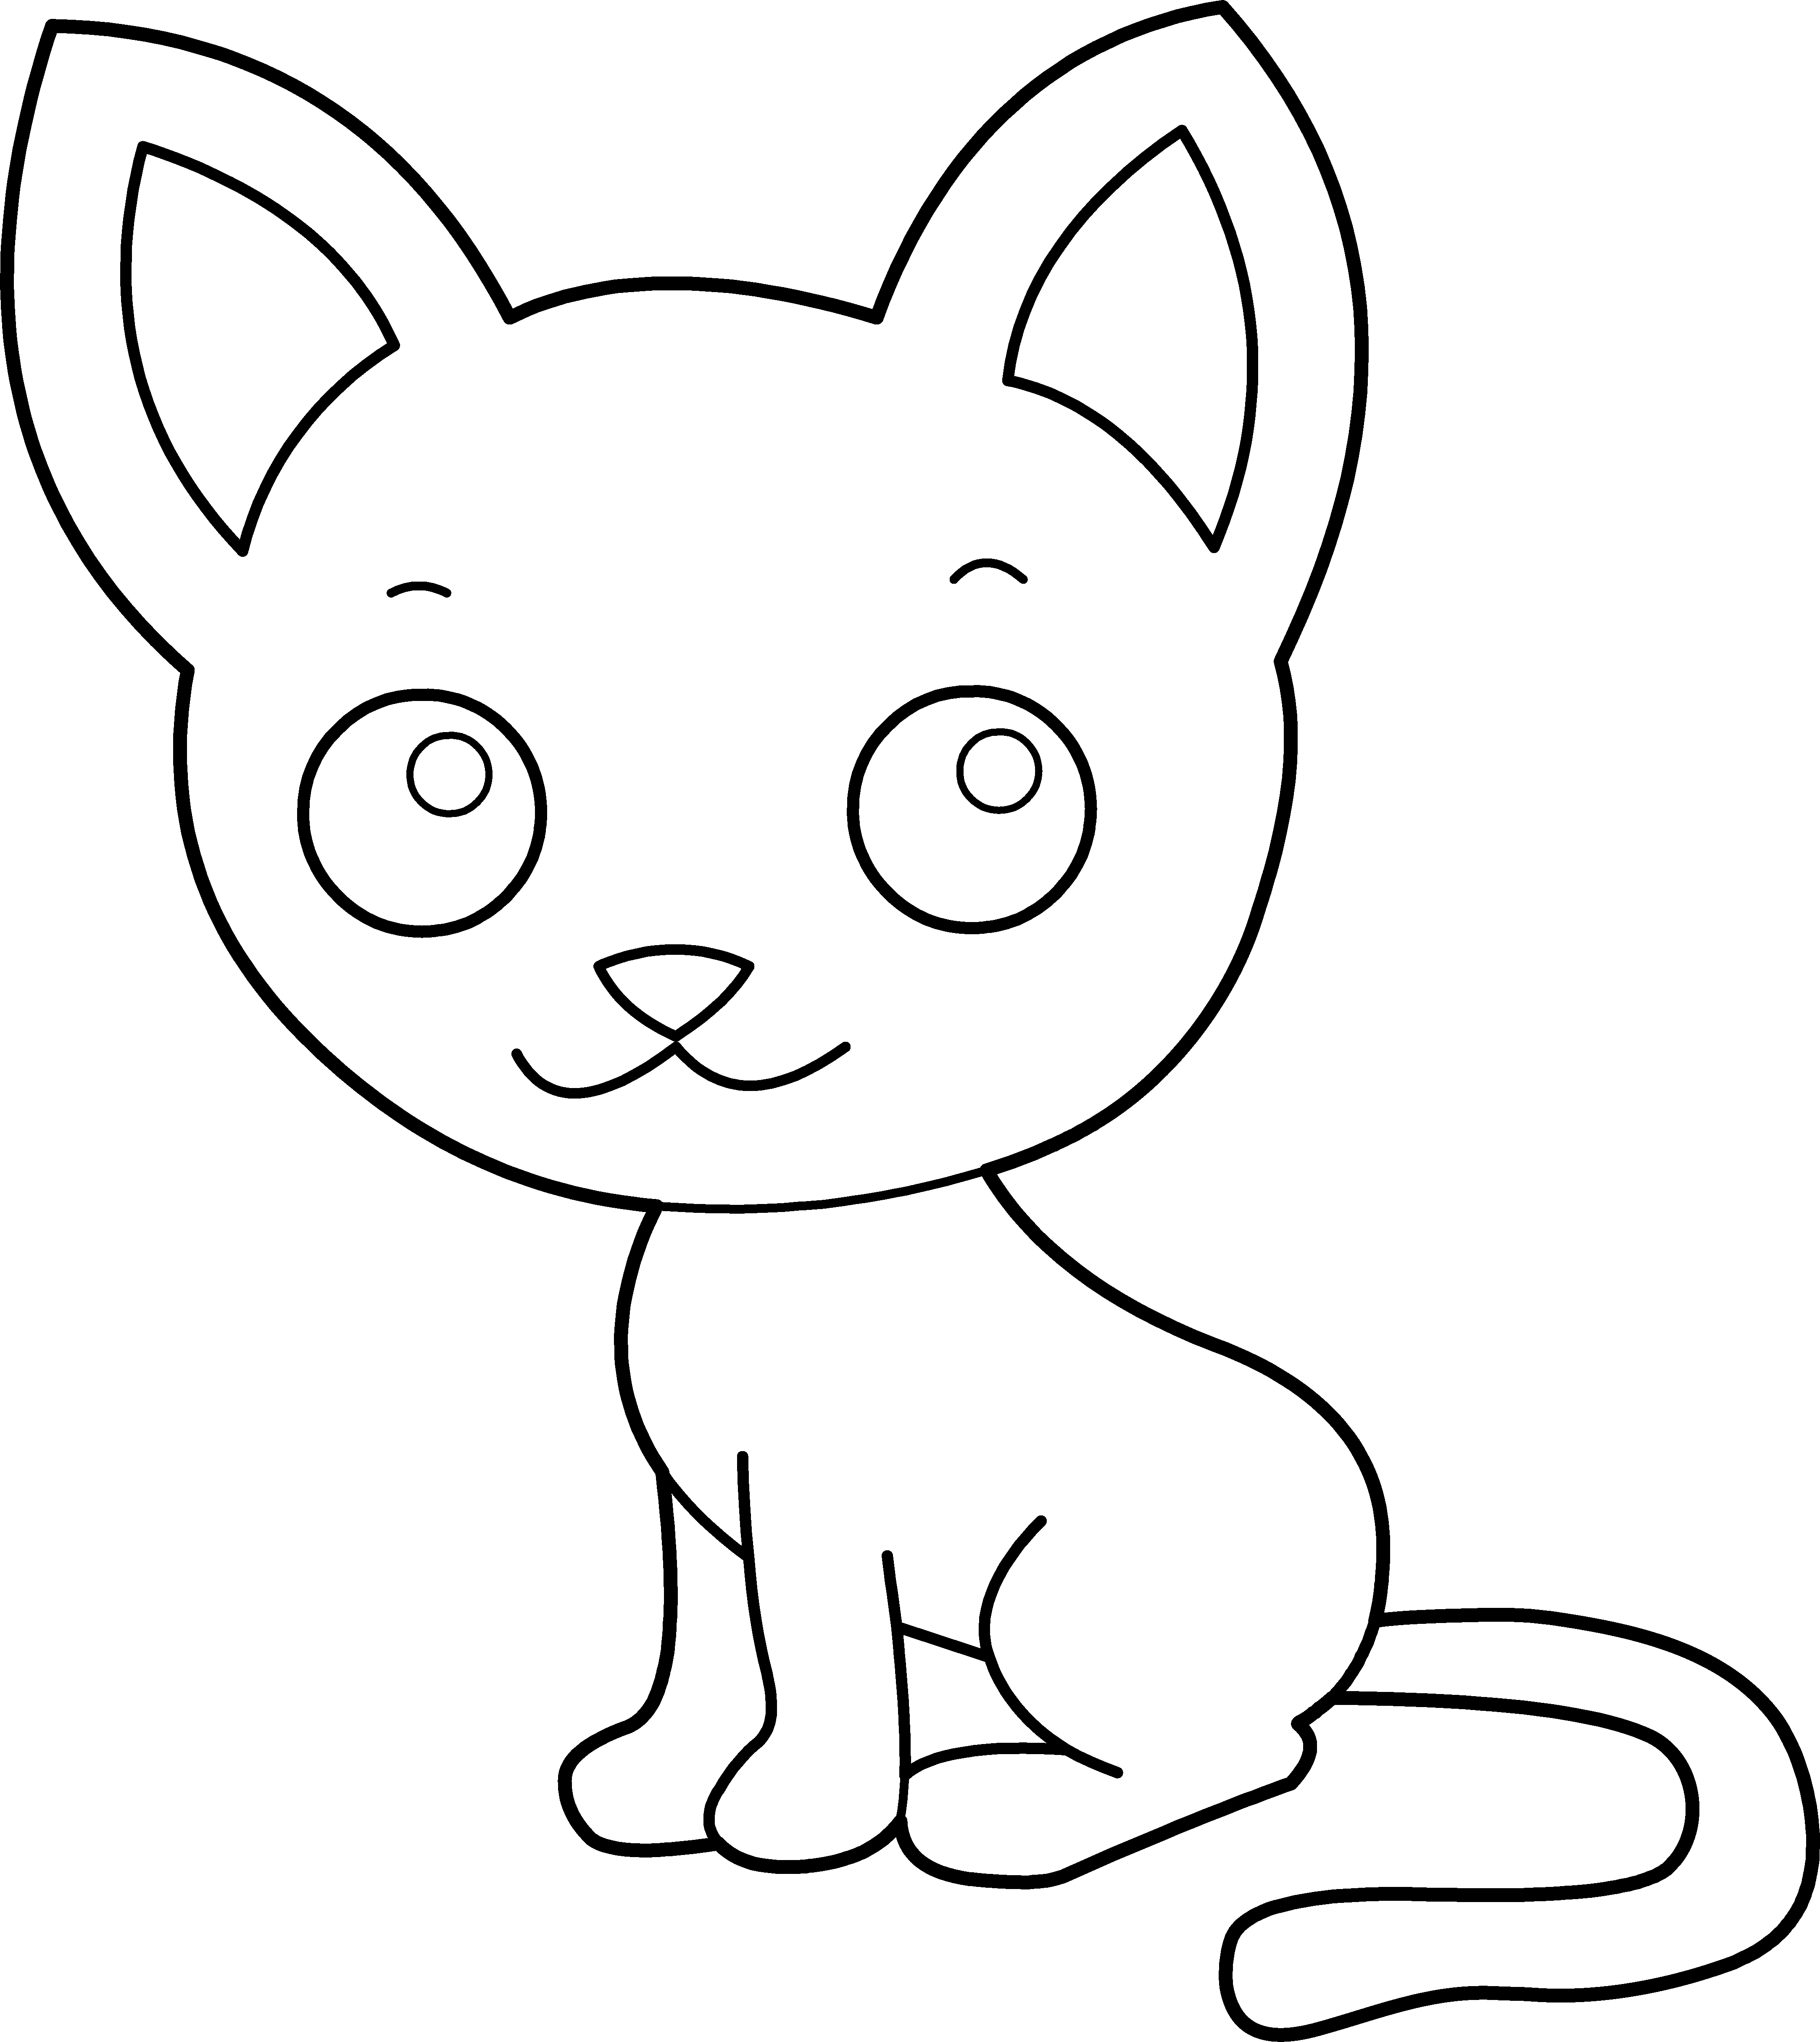 Coloring cat clipart image transparent library Cute Kitty Cat Coloring Page - Free Clip Art image transparent library